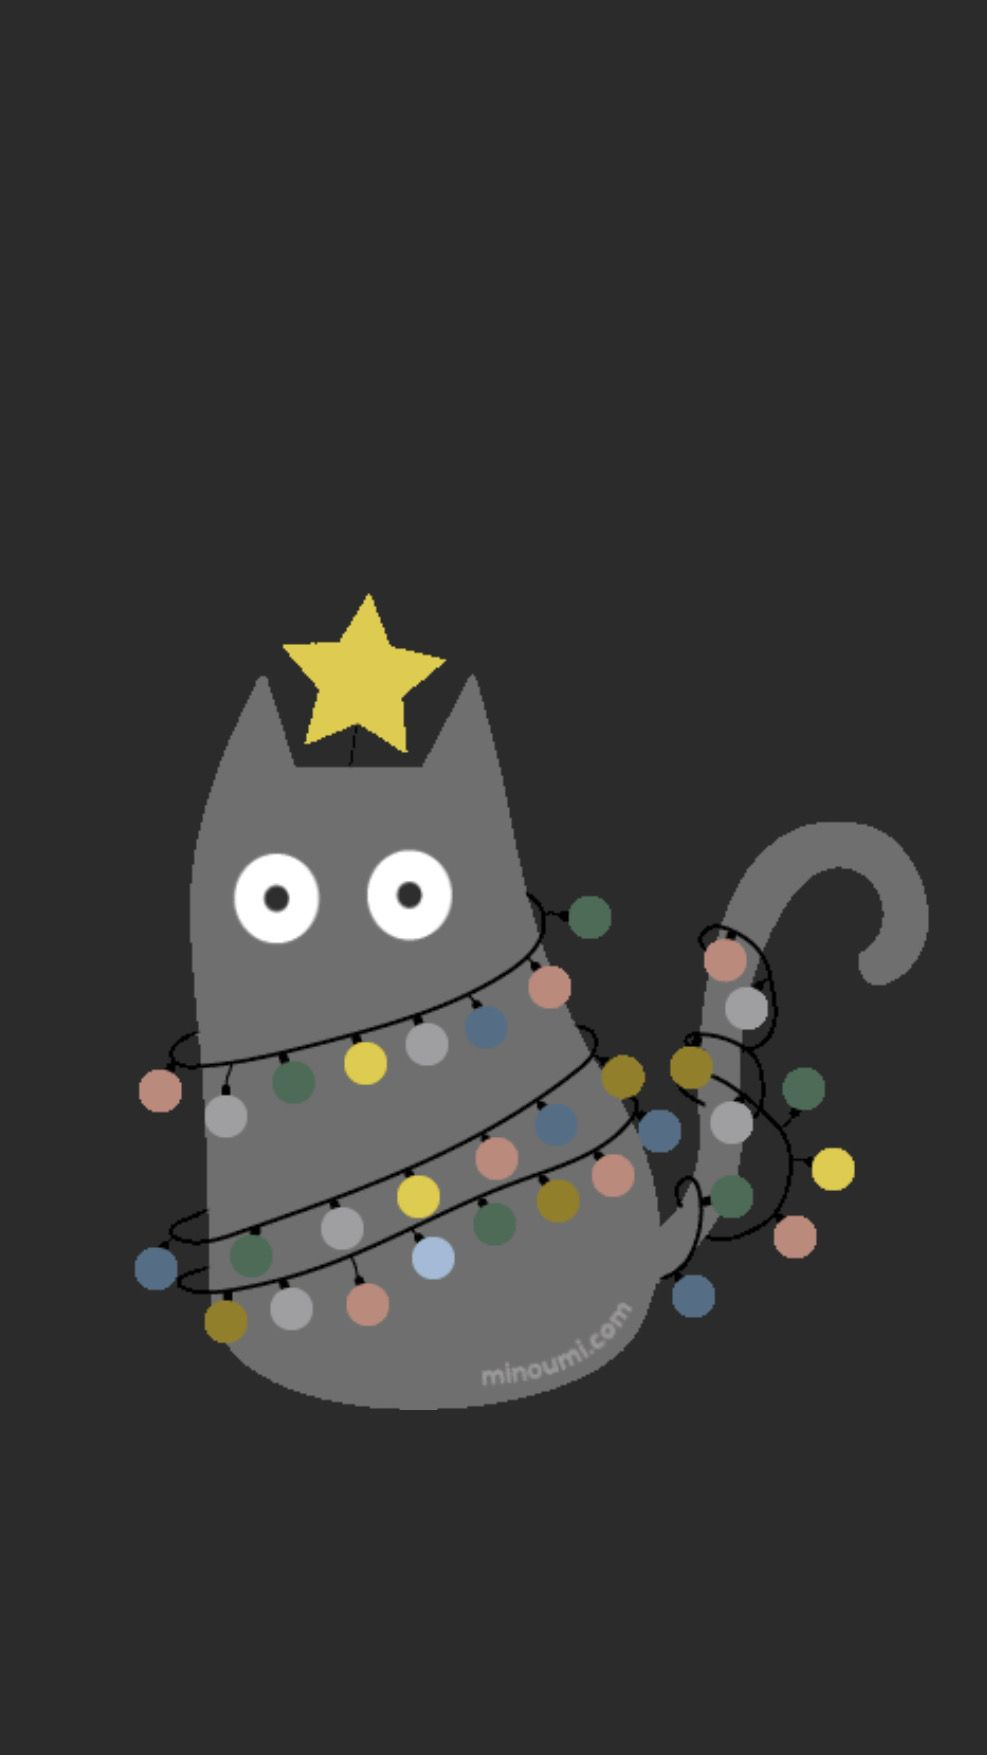 Pin By Angie Clatterbuck On Wallpapers Iphone Christmas Cats Cat Art Cat Greeting Cards